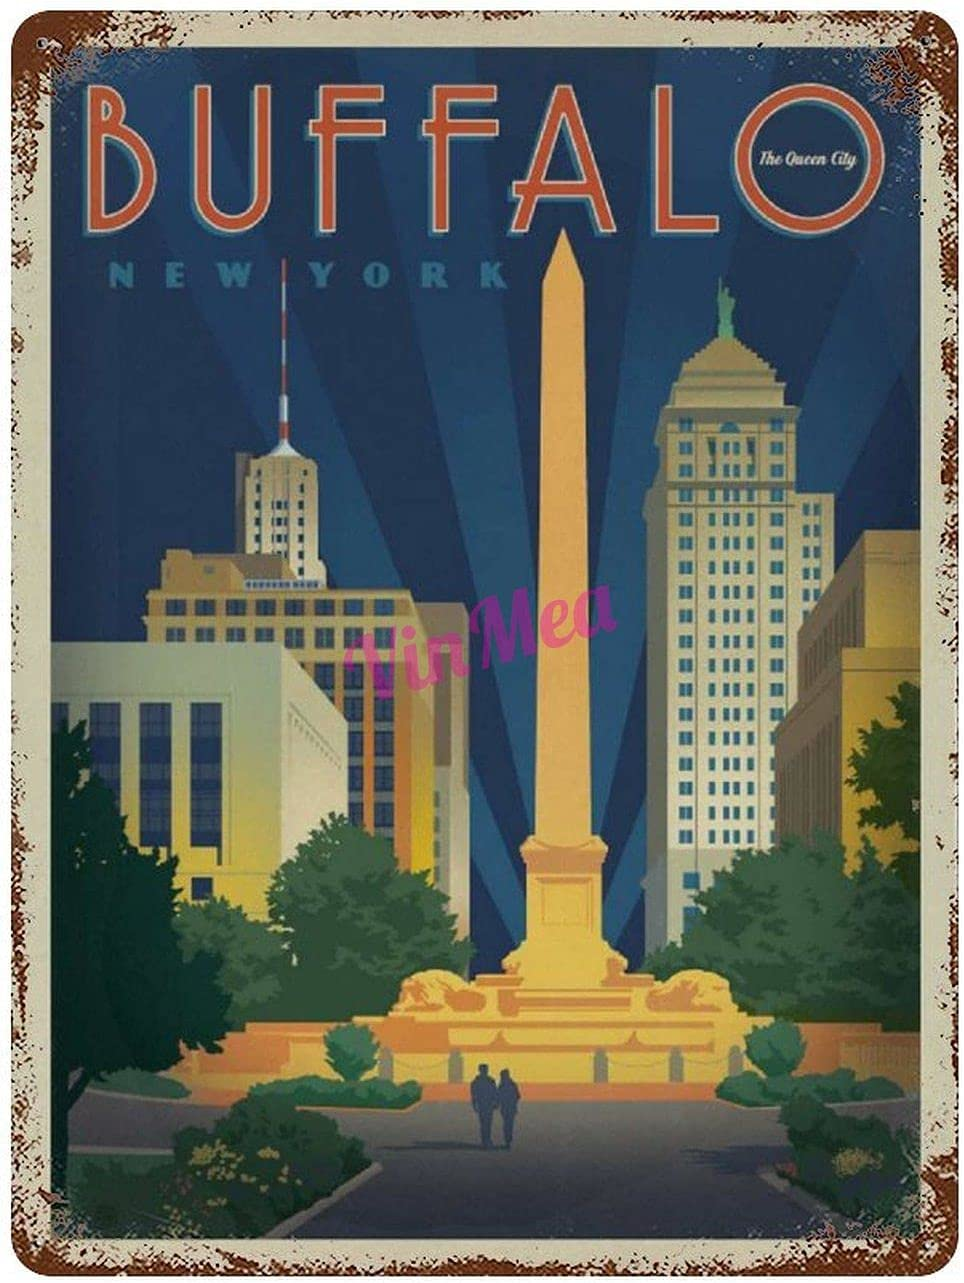 Vintage Iron Painting Buffalo, NY Retro Metal Signs Poster Wall Decor for Bar Cafe Home Garage 12×8 inches